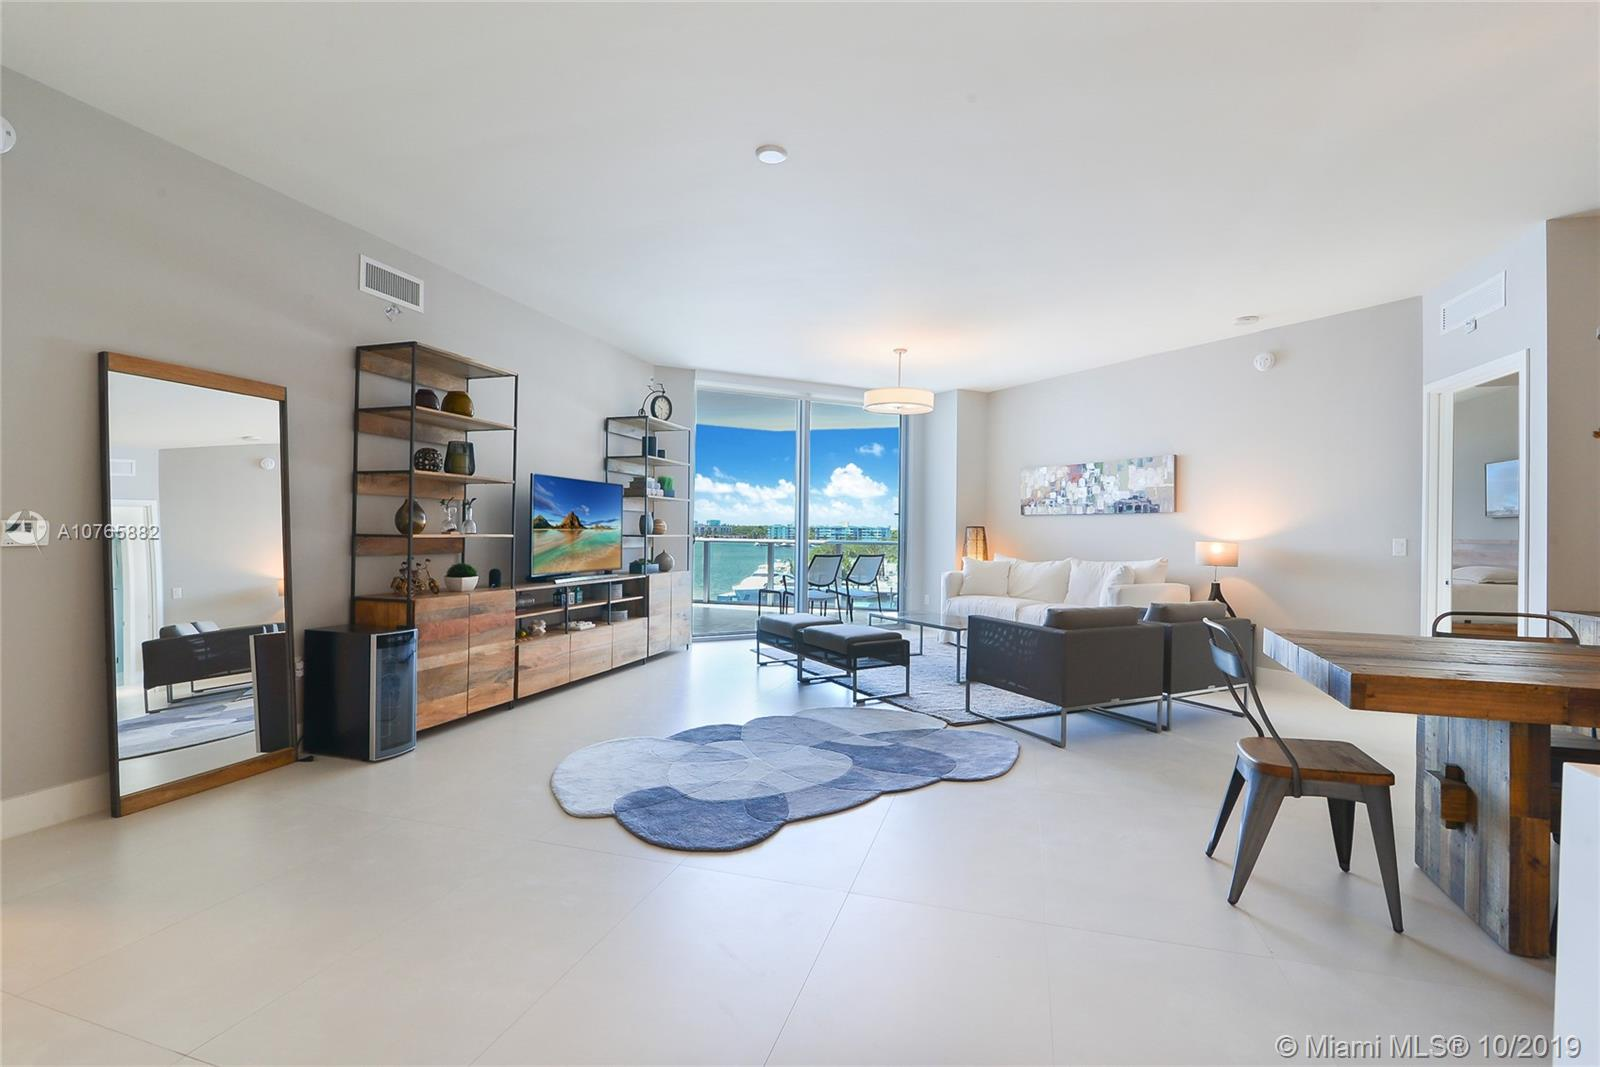 17301  Biscayne Blvd #407 For Sale A10765882, FL